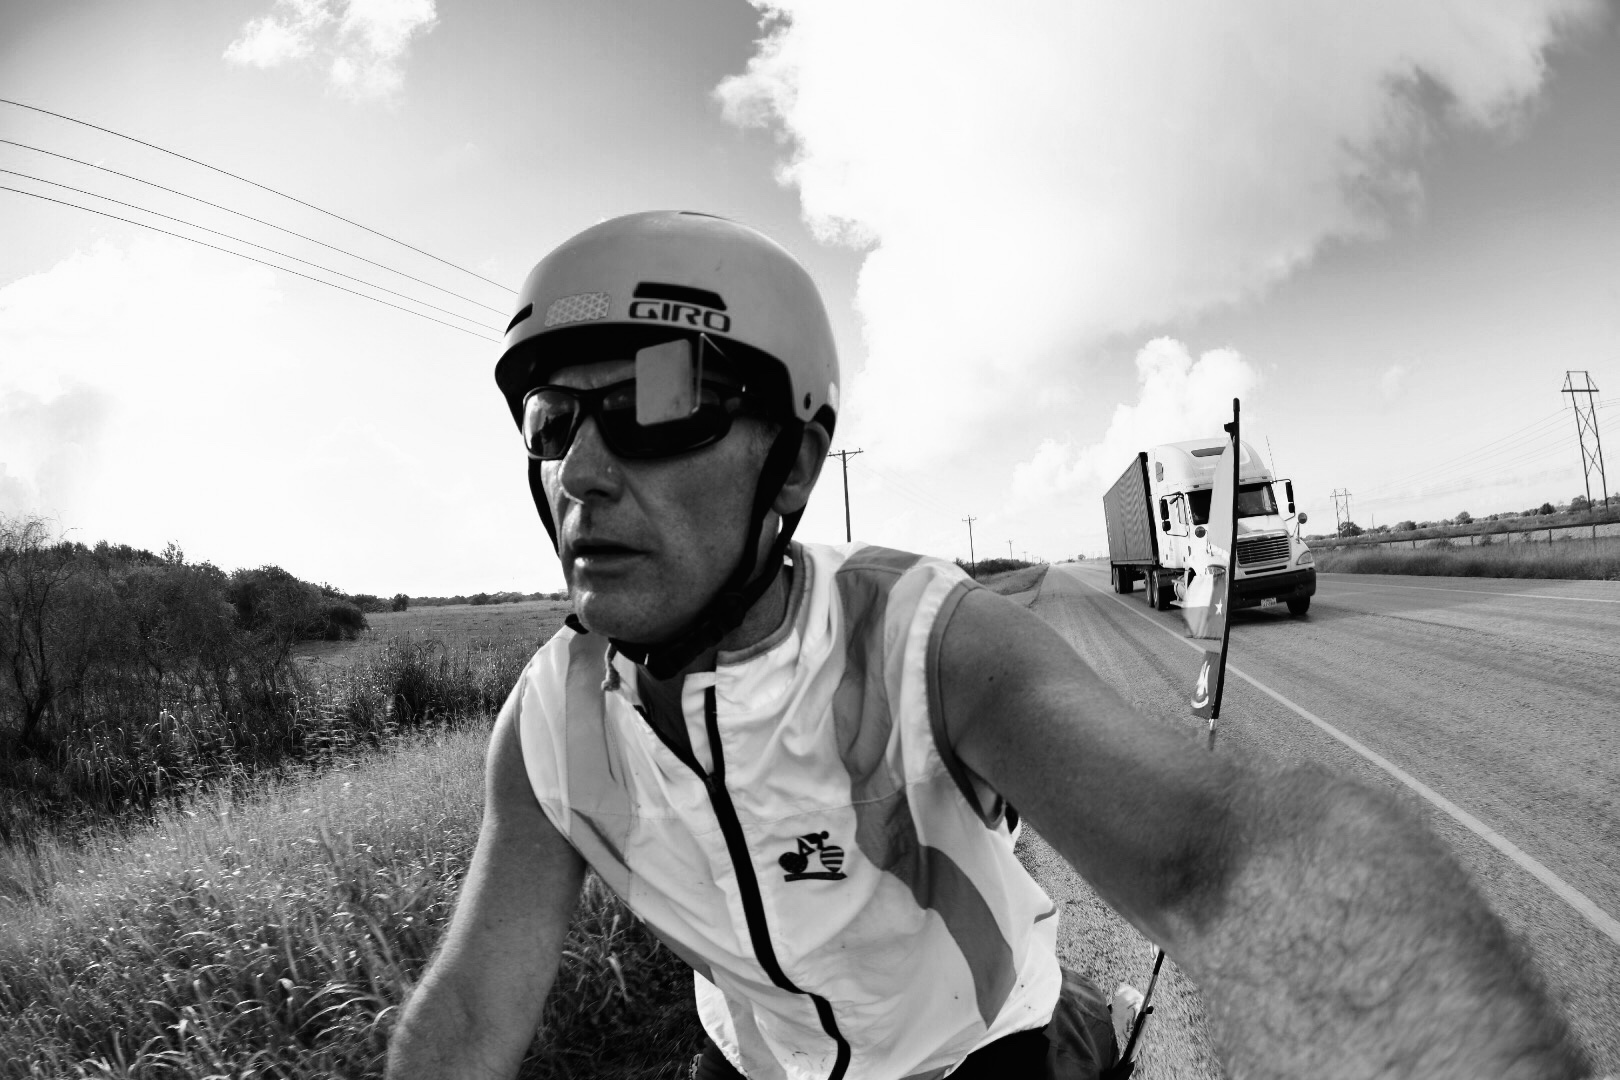 Retired U.S. Coast Guard Photojournalist Keith Spangler recently cycled through five states, covering 1,400 miles. He used his Platypod Max to document the journey and as camera support along the way.